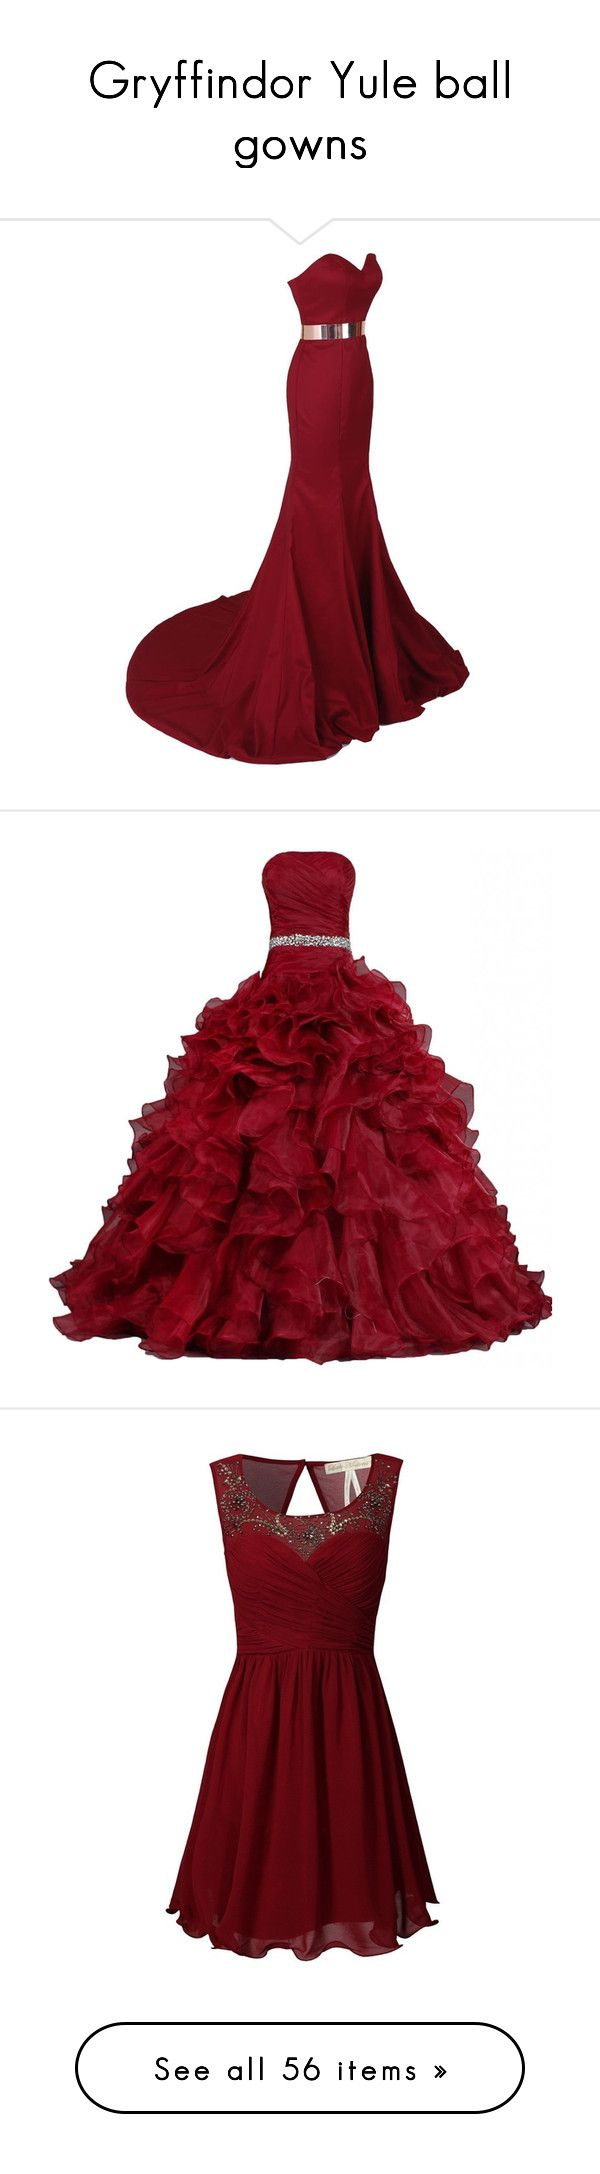 """Gryffindor Yule ball gowns"" by weeby ❤ liked on Polyvore featuring fans, dresses, gowns, long dresses, vestidos, vestidos longos, long red dress, red ball gown, satin evening gown and masquerade ball gowns"